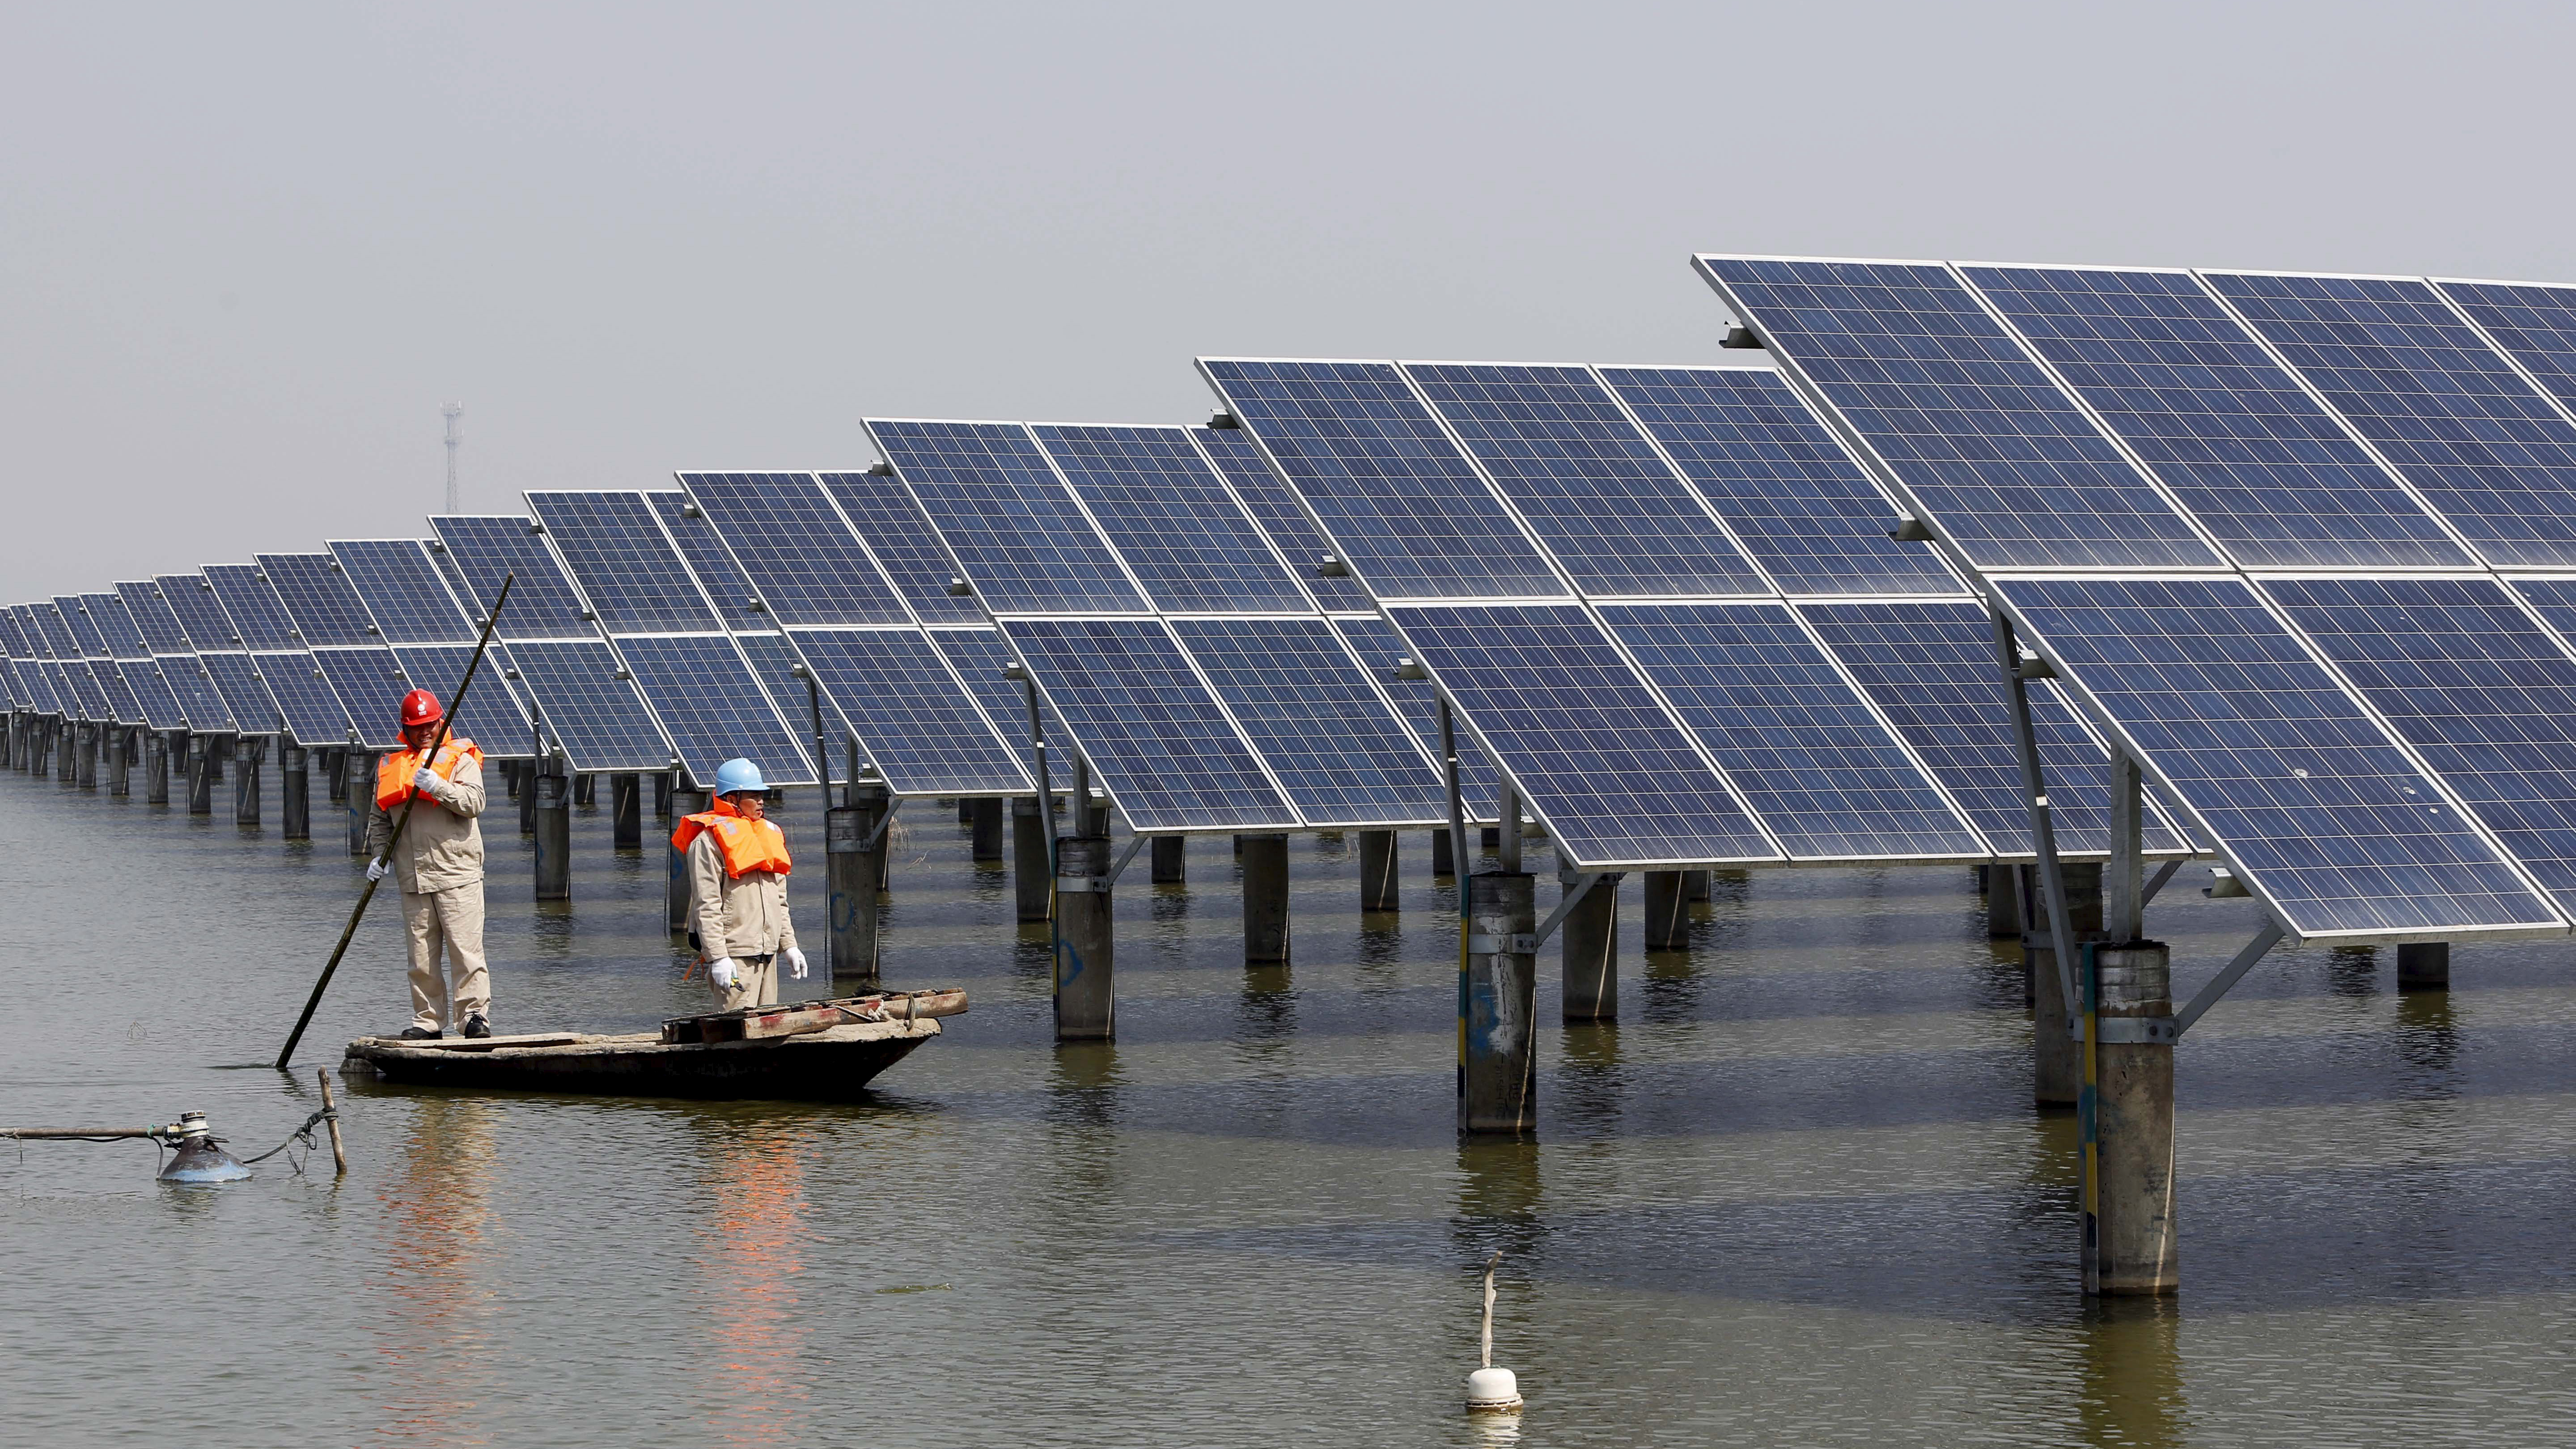 China says it will invest another $361 dollars in renewable energy over the next four years and create 13 million new jobs in the sector, building on previous massive investments. The country already has the largest capacity of solar p